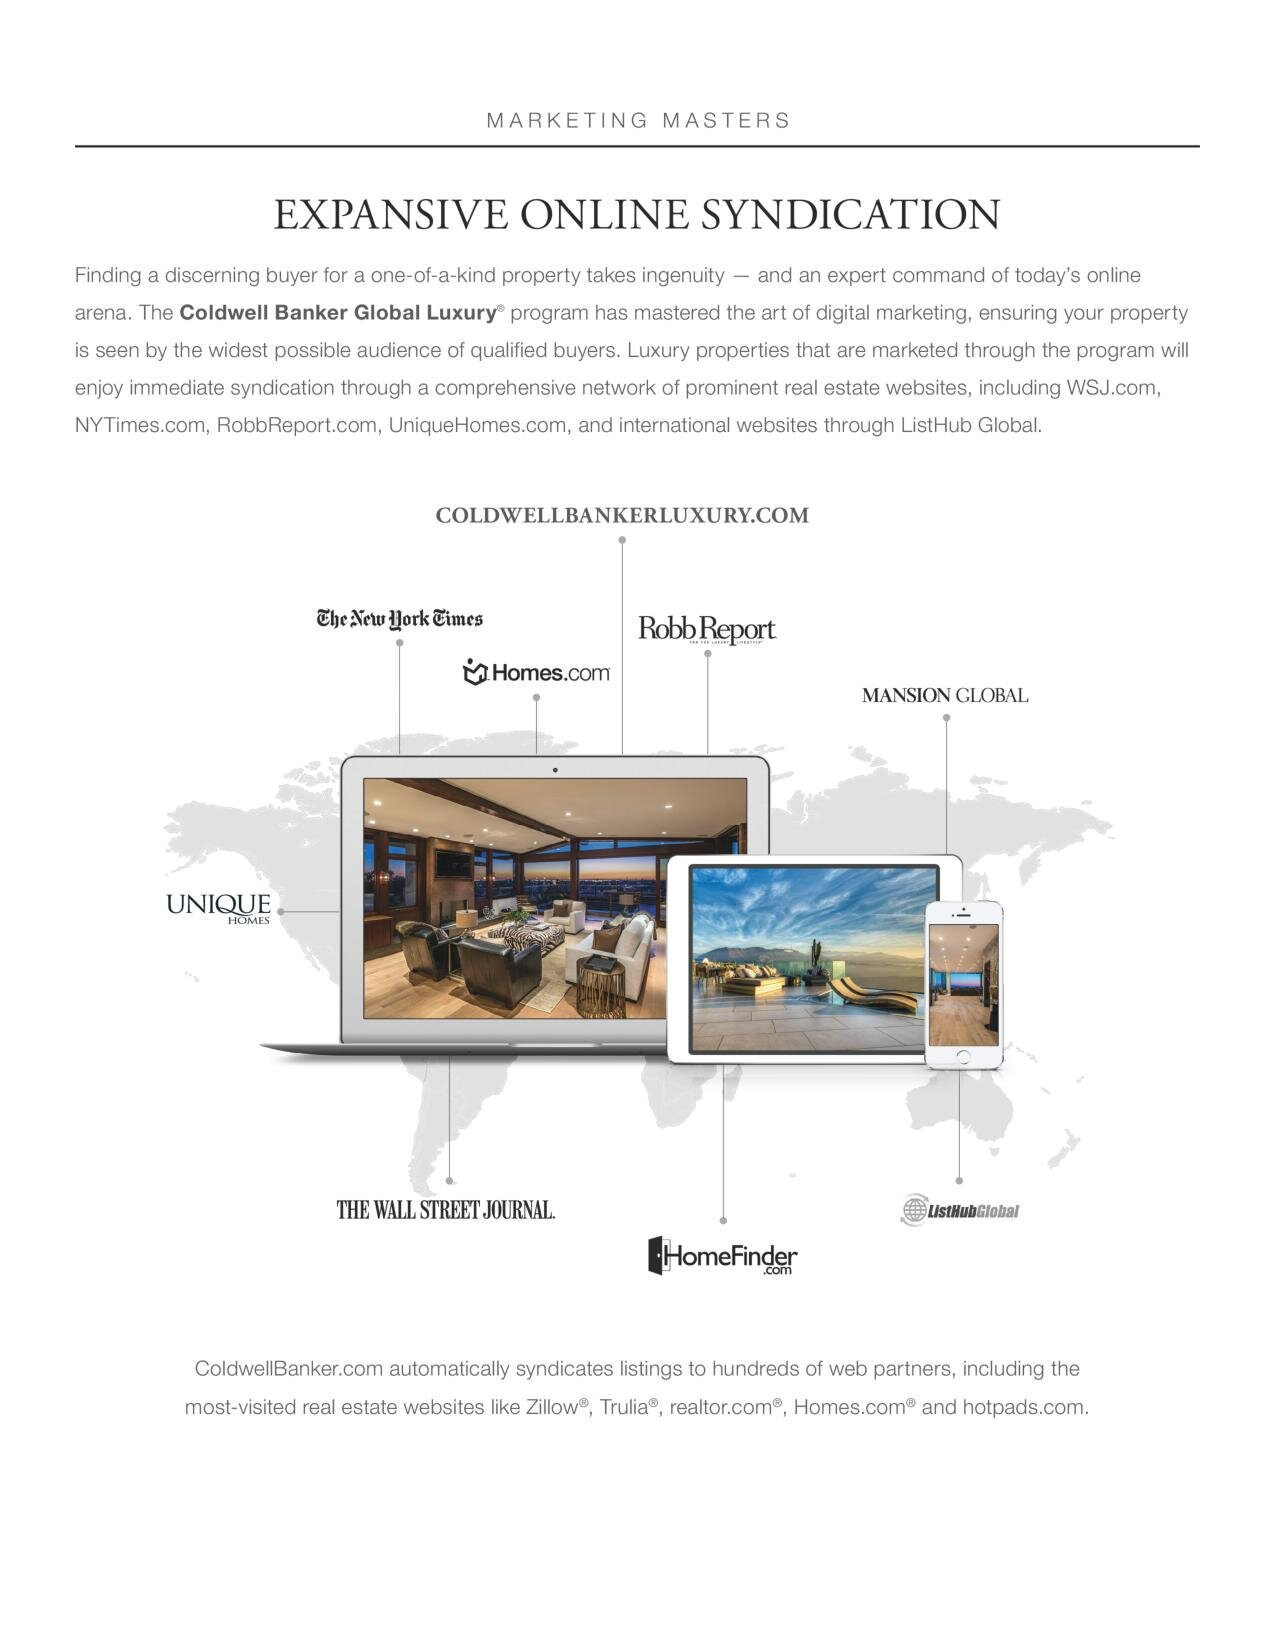 Online Syndication-page-001.jpg